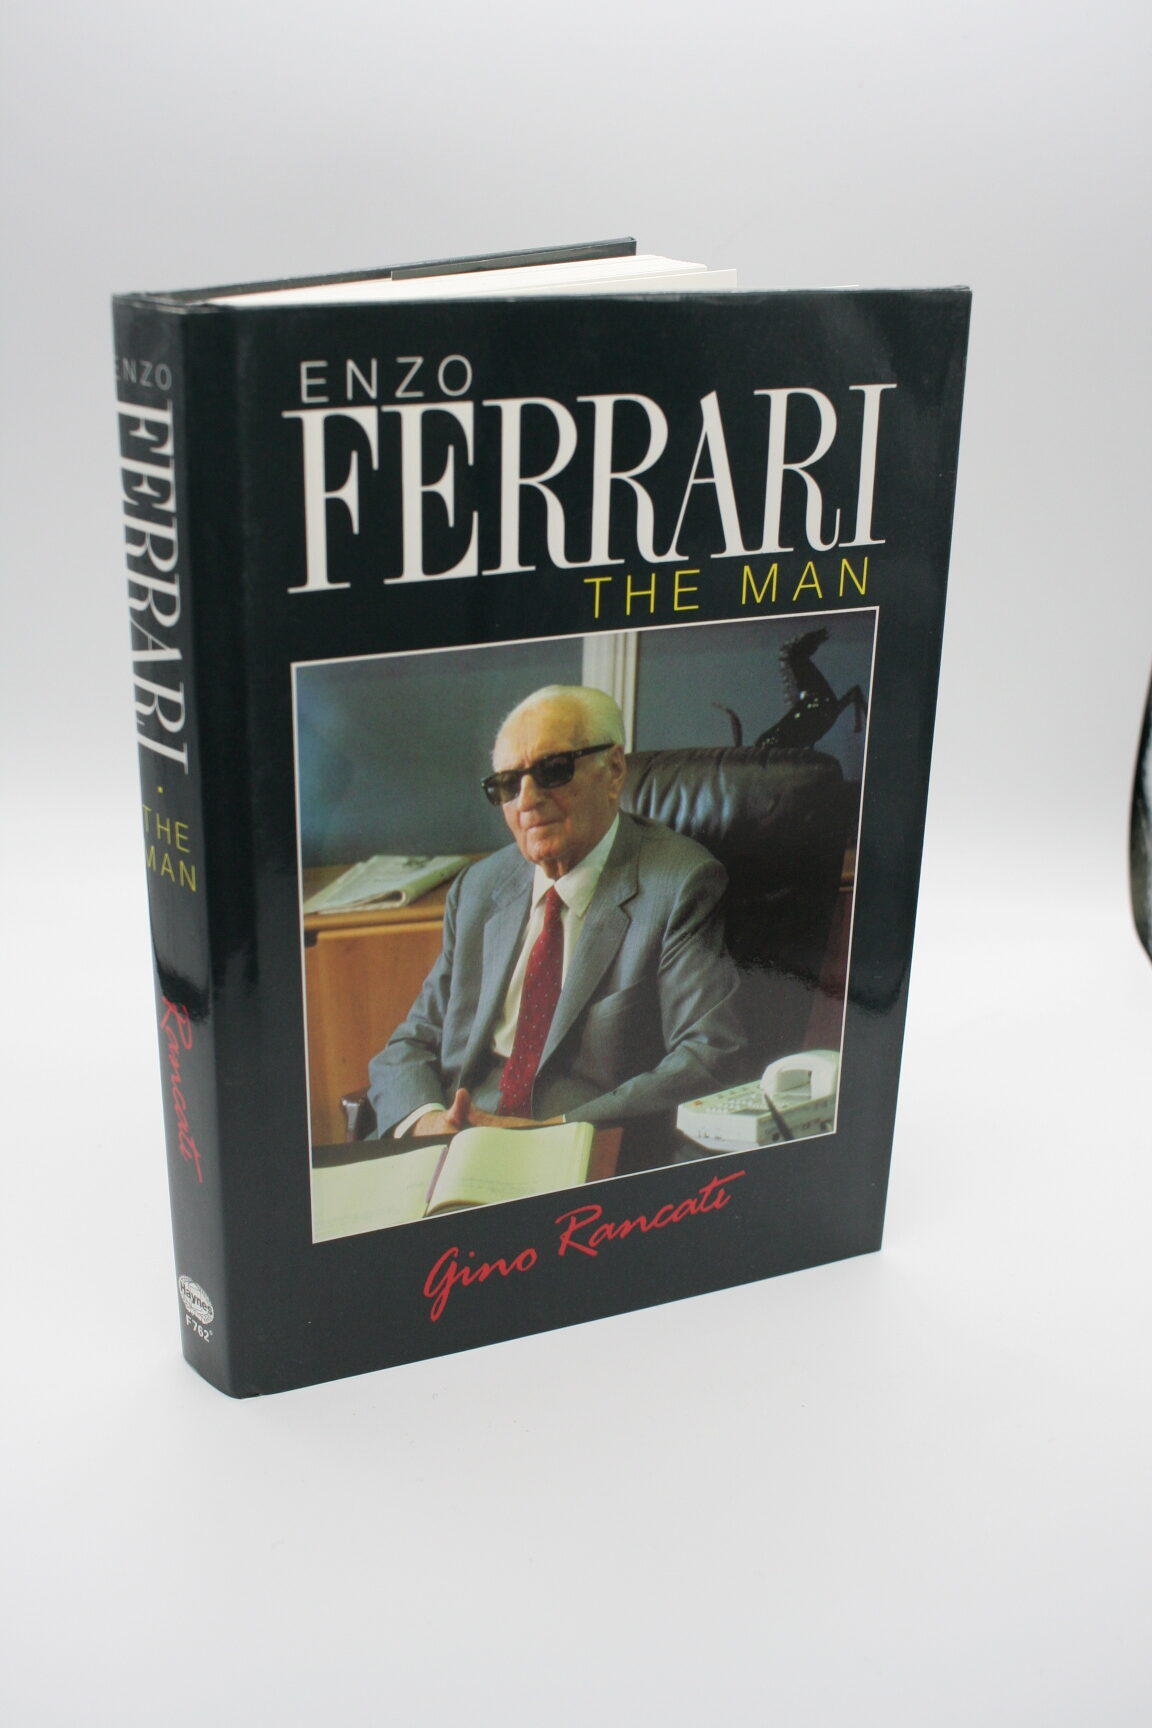 Enzo Ferrari: The Man - Gino Rancati